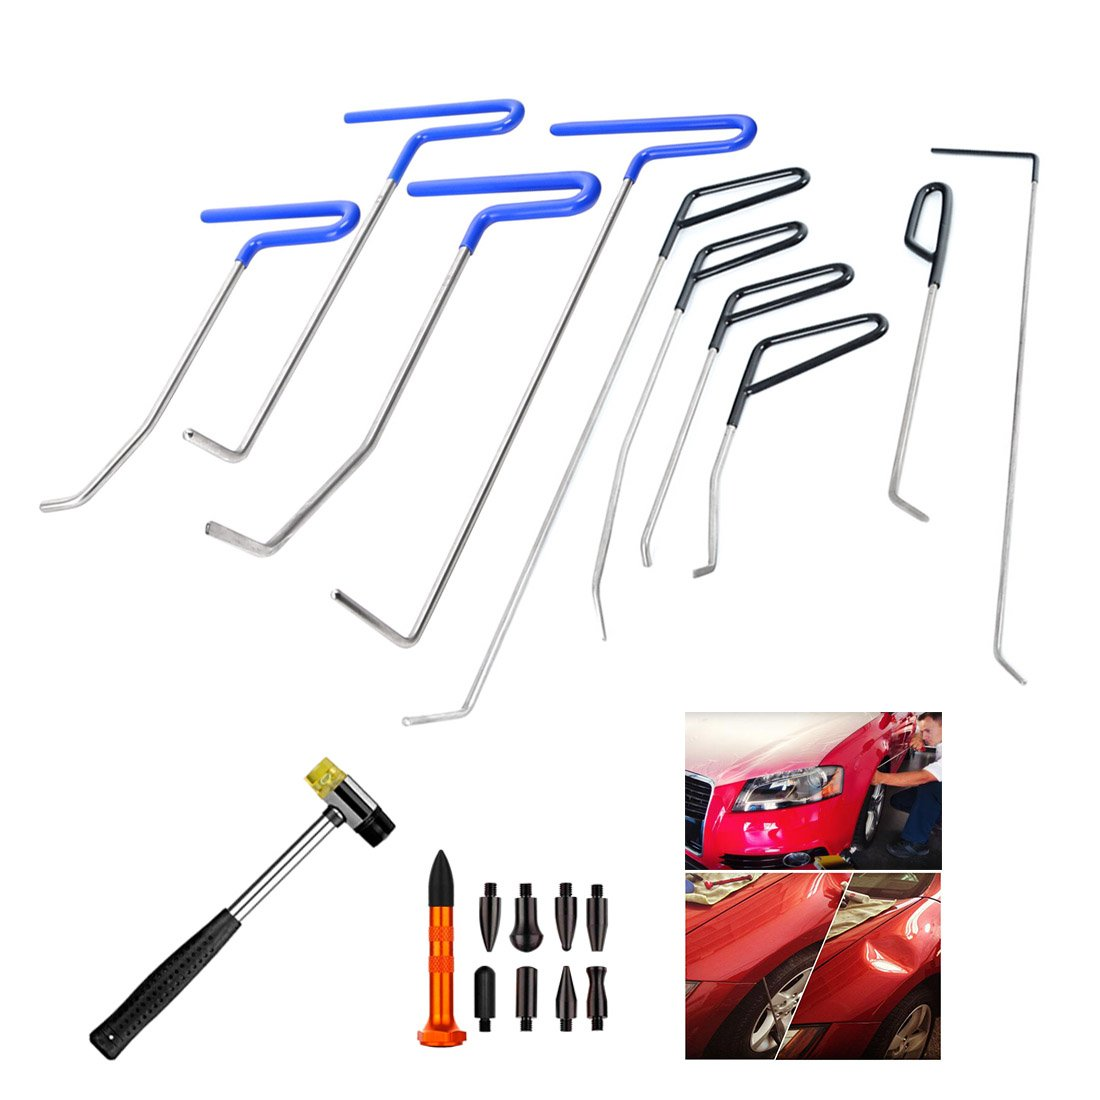 WHDZ Paintless Dent Repair Rods Auto Body Dent Removal Tools 10pcs Auto Car Body Paintless Dent Repair Dent Puller Dent Hammer Tap Down